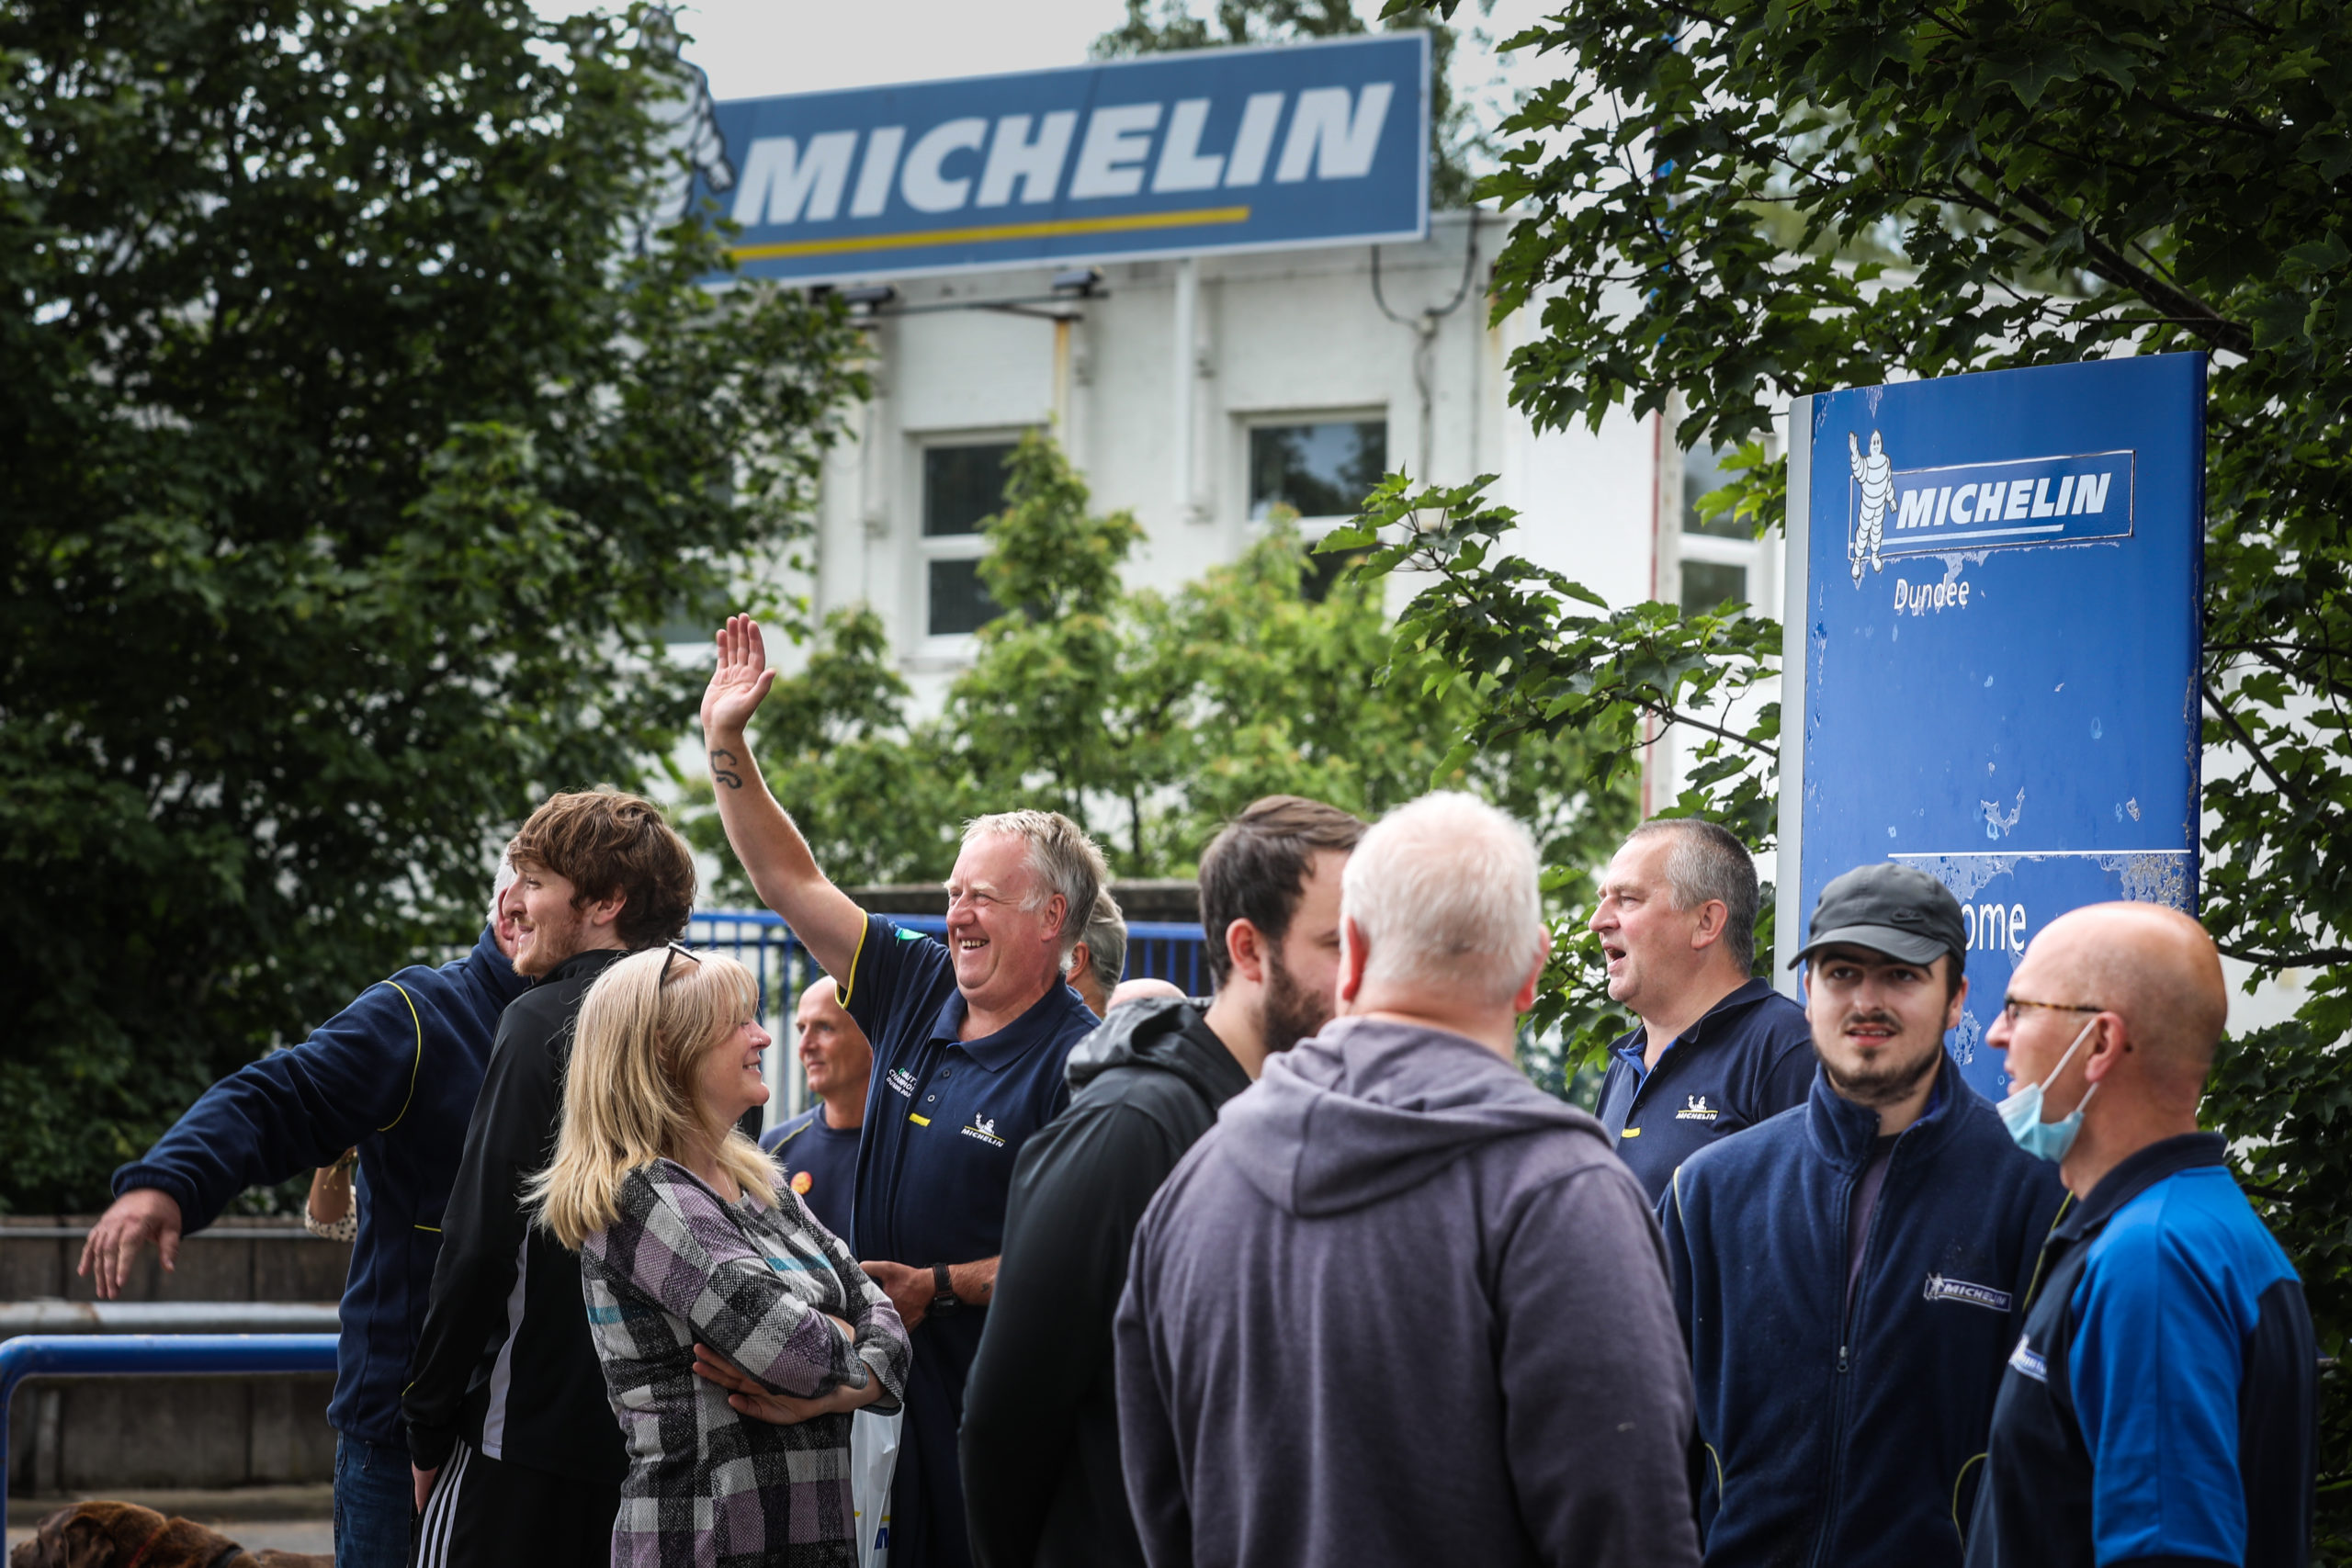 Employees of Michelin leave the gates for the last time today.